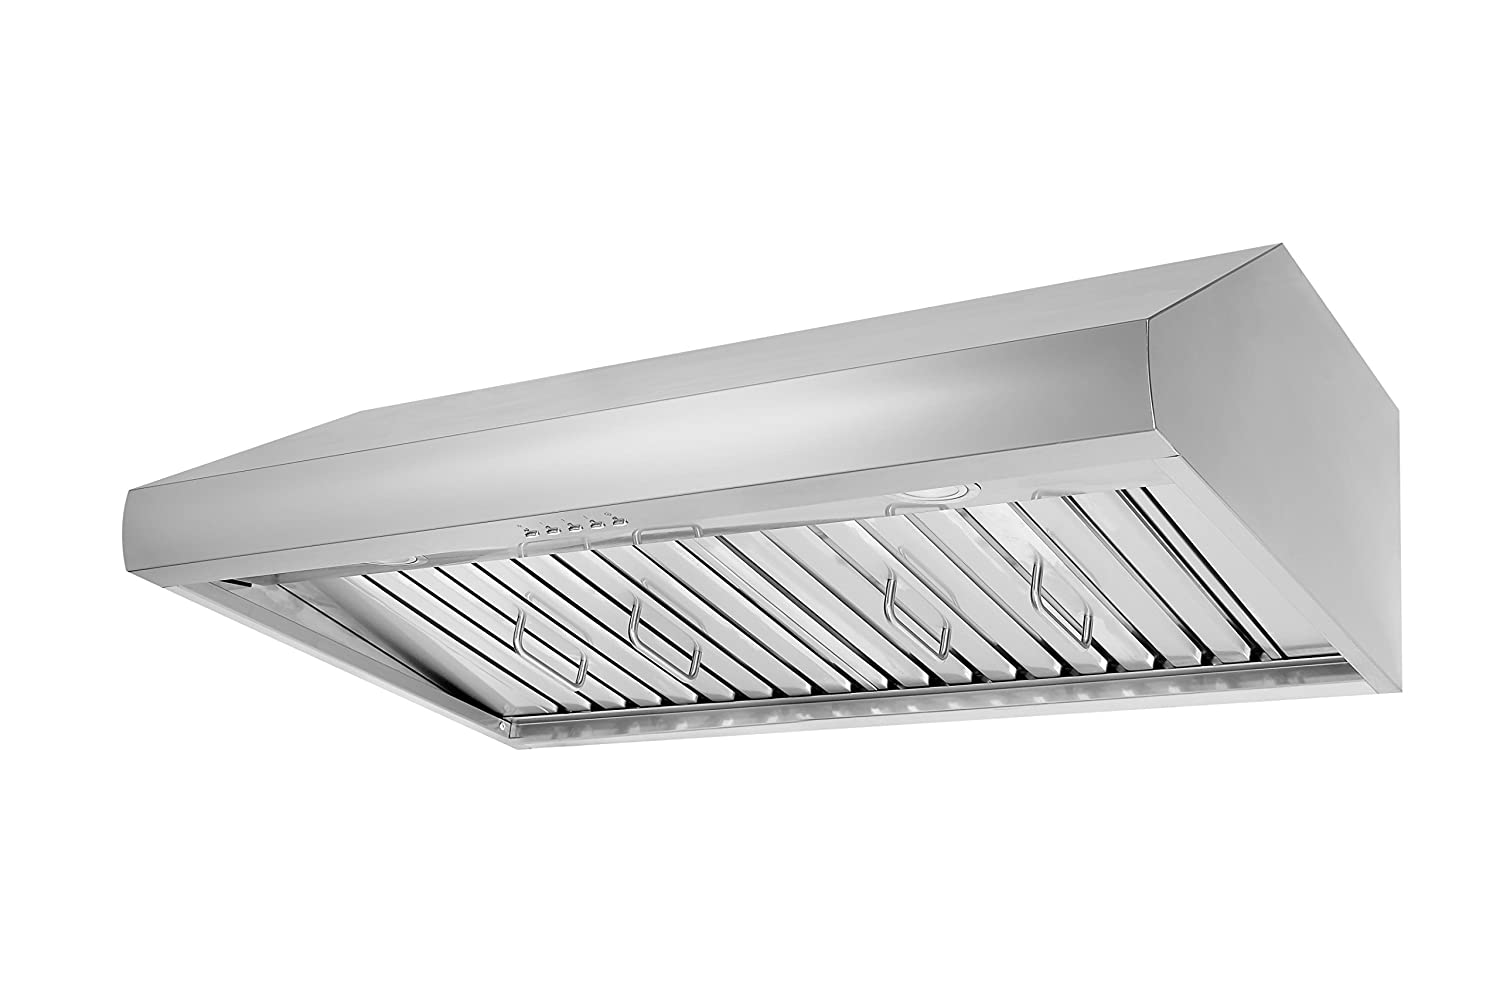 "Thorkitchen HRH3606U HRH3606 36"" Under Cabinet Range Hood with 900 CFM Push Control, Stainless Steel"